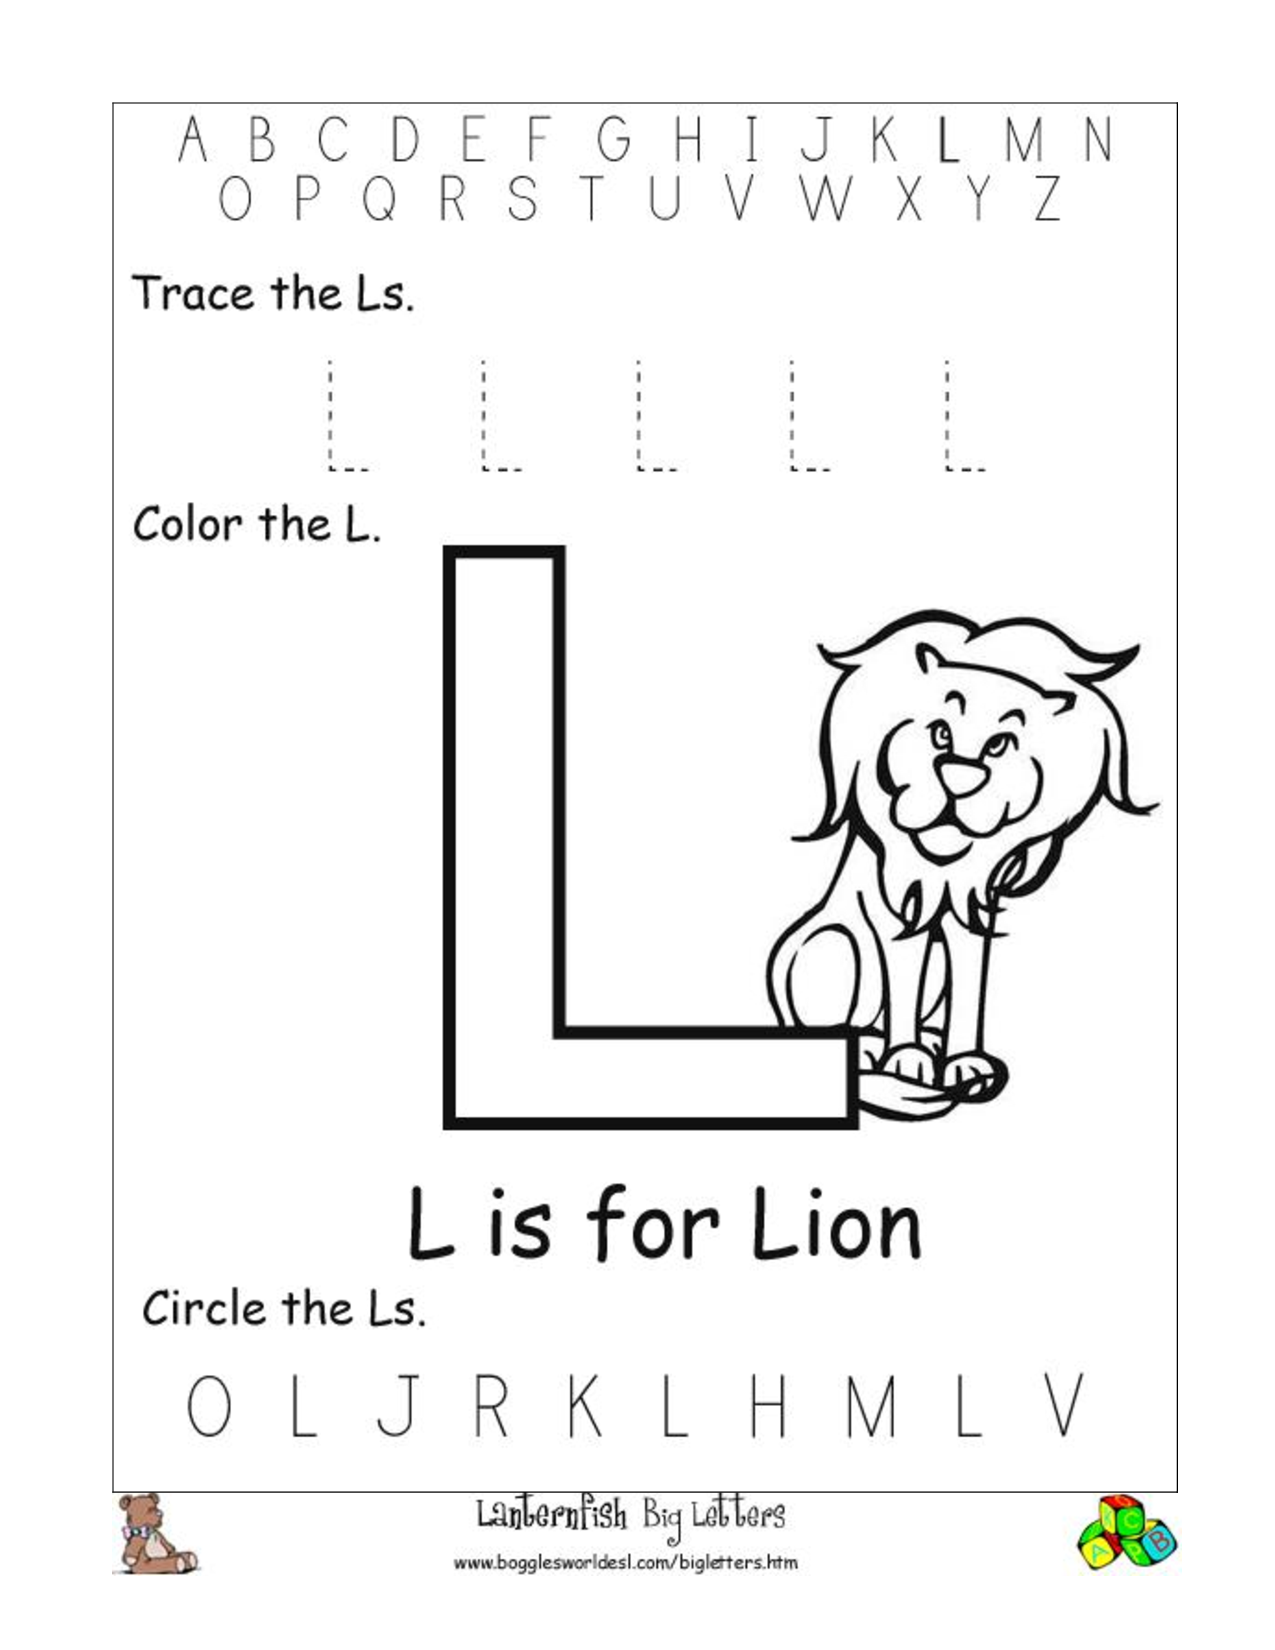 Worksheets Letter Ll Worksheets l worksheet bartradicionalluna letter worksheets for preschool coloring page